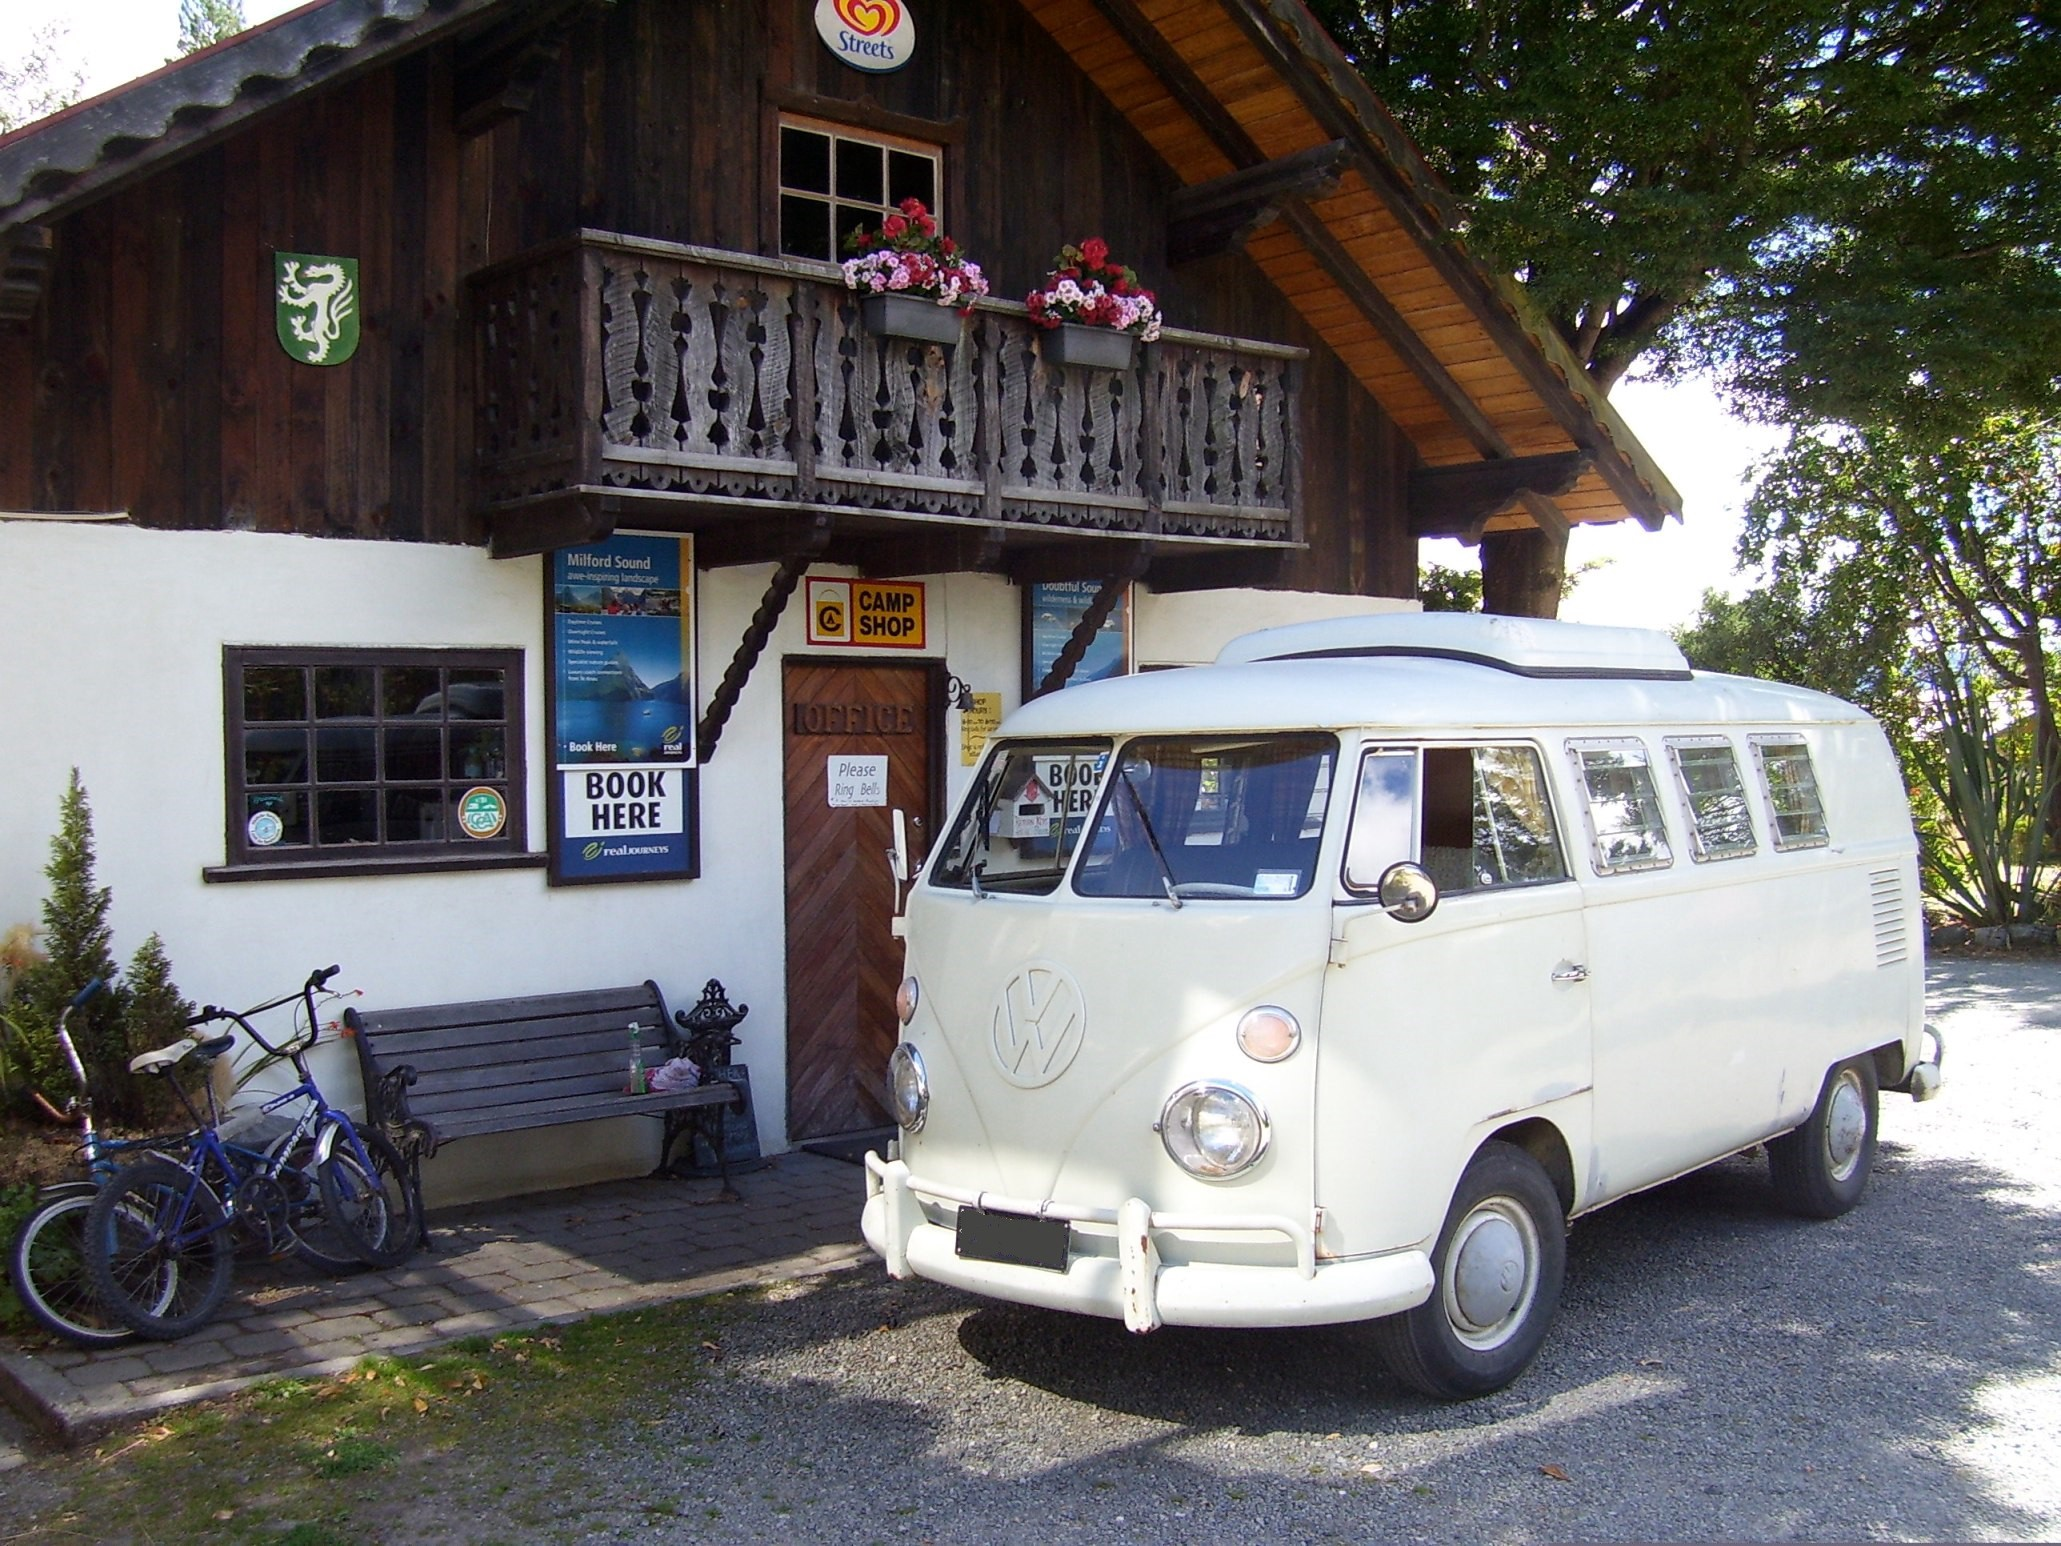 The camp office with the old 1966 Kombi van